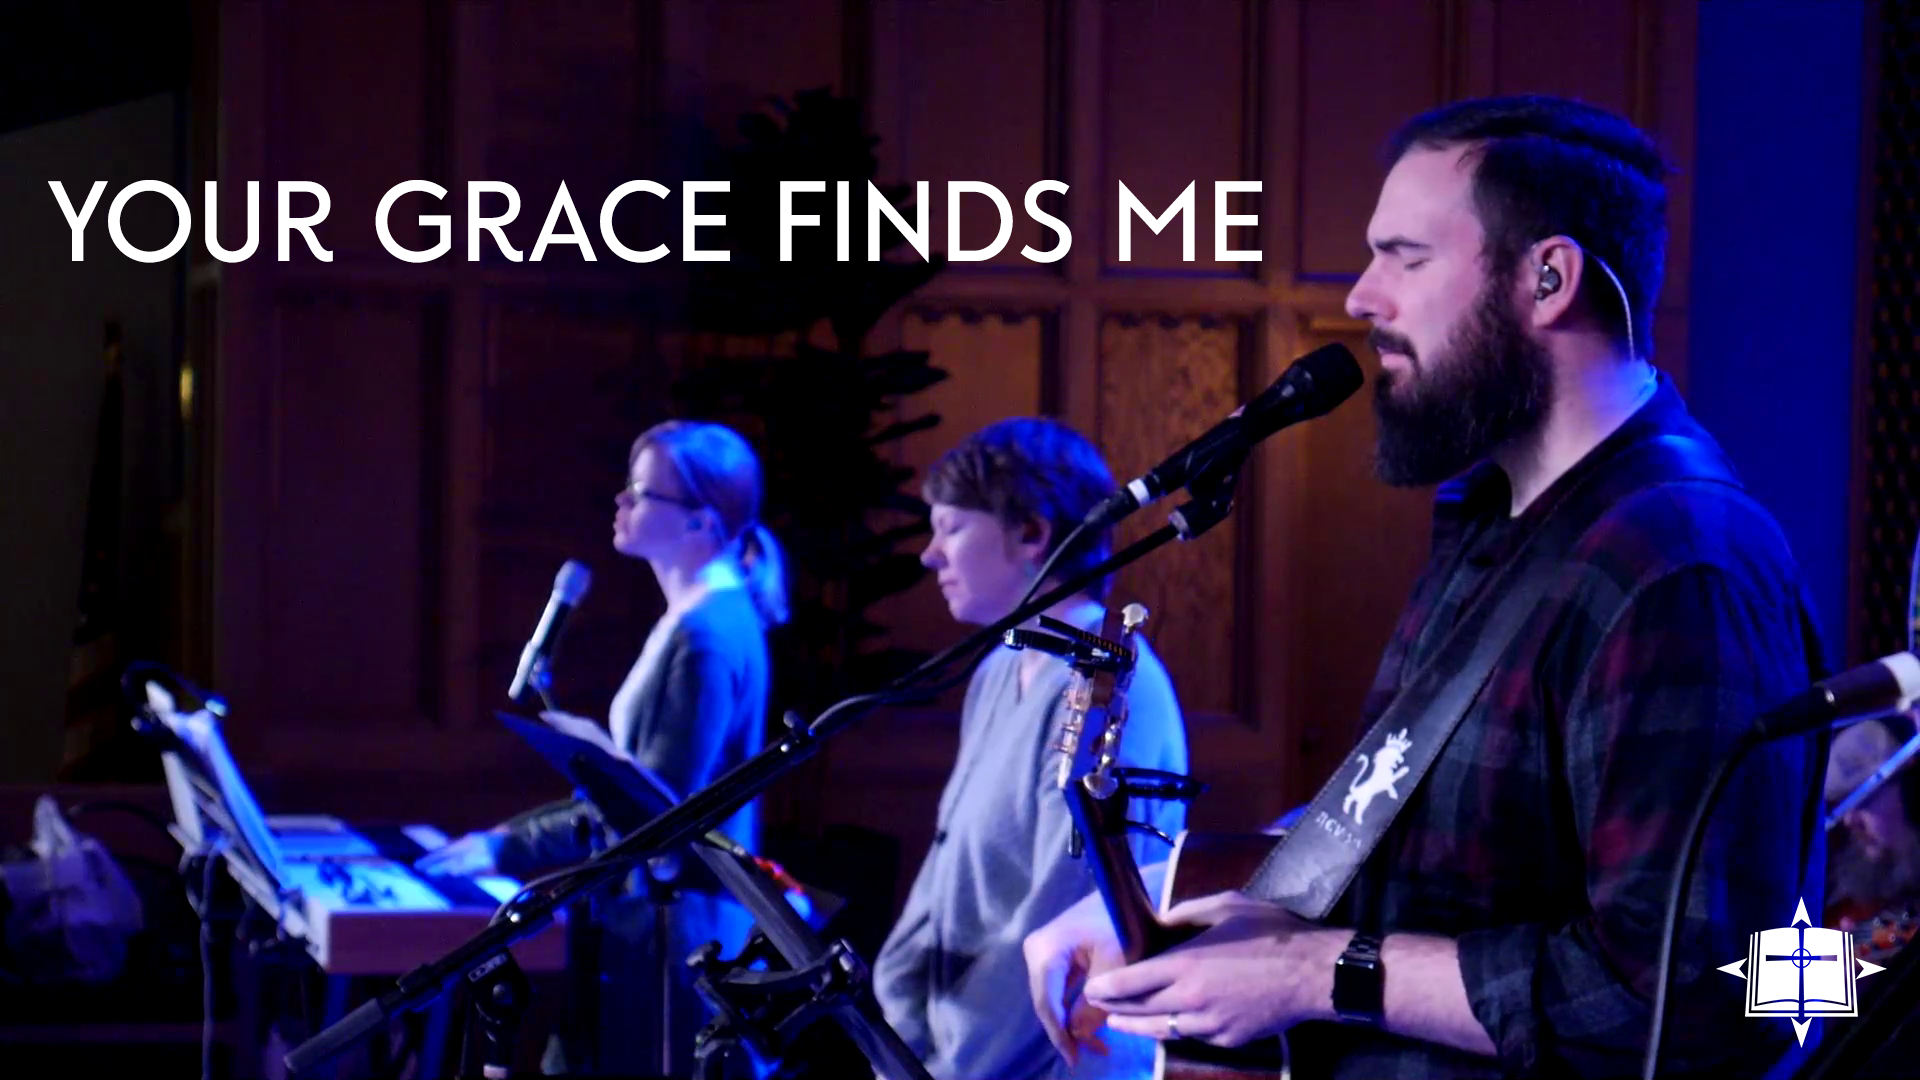 Your Grace Finds Me Image